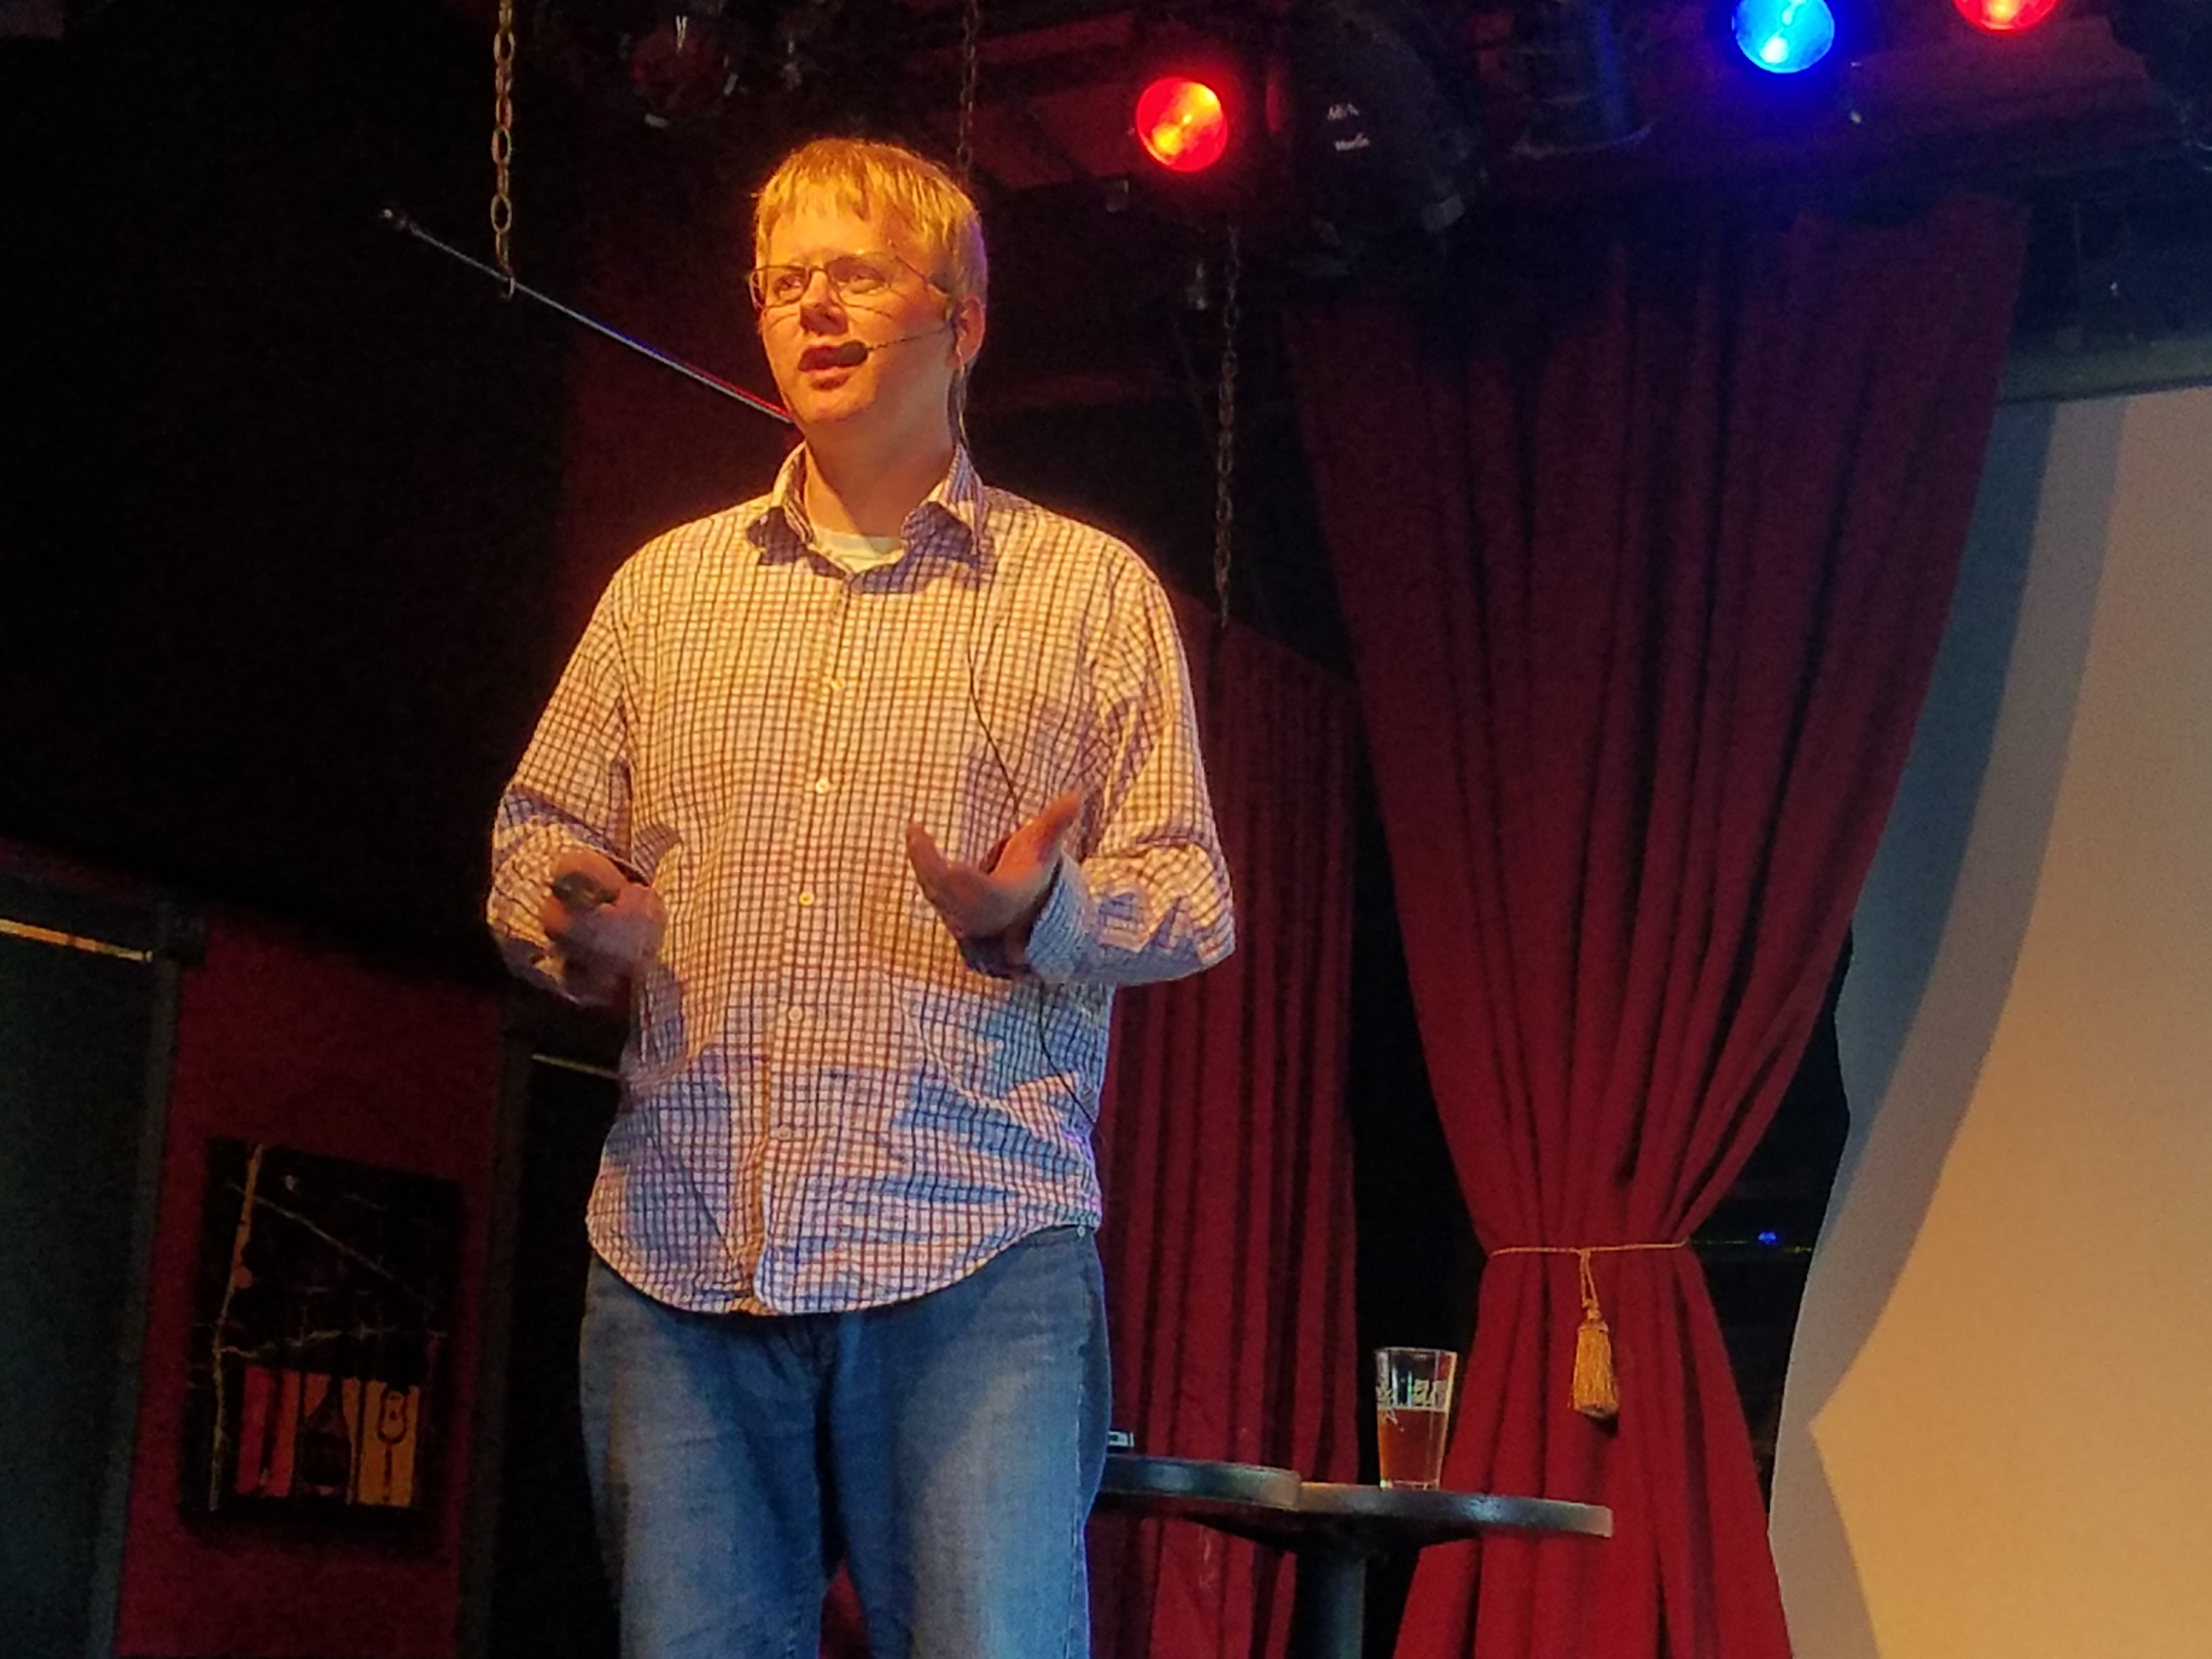 Nerd Nite: Nathan Moore on school lunches